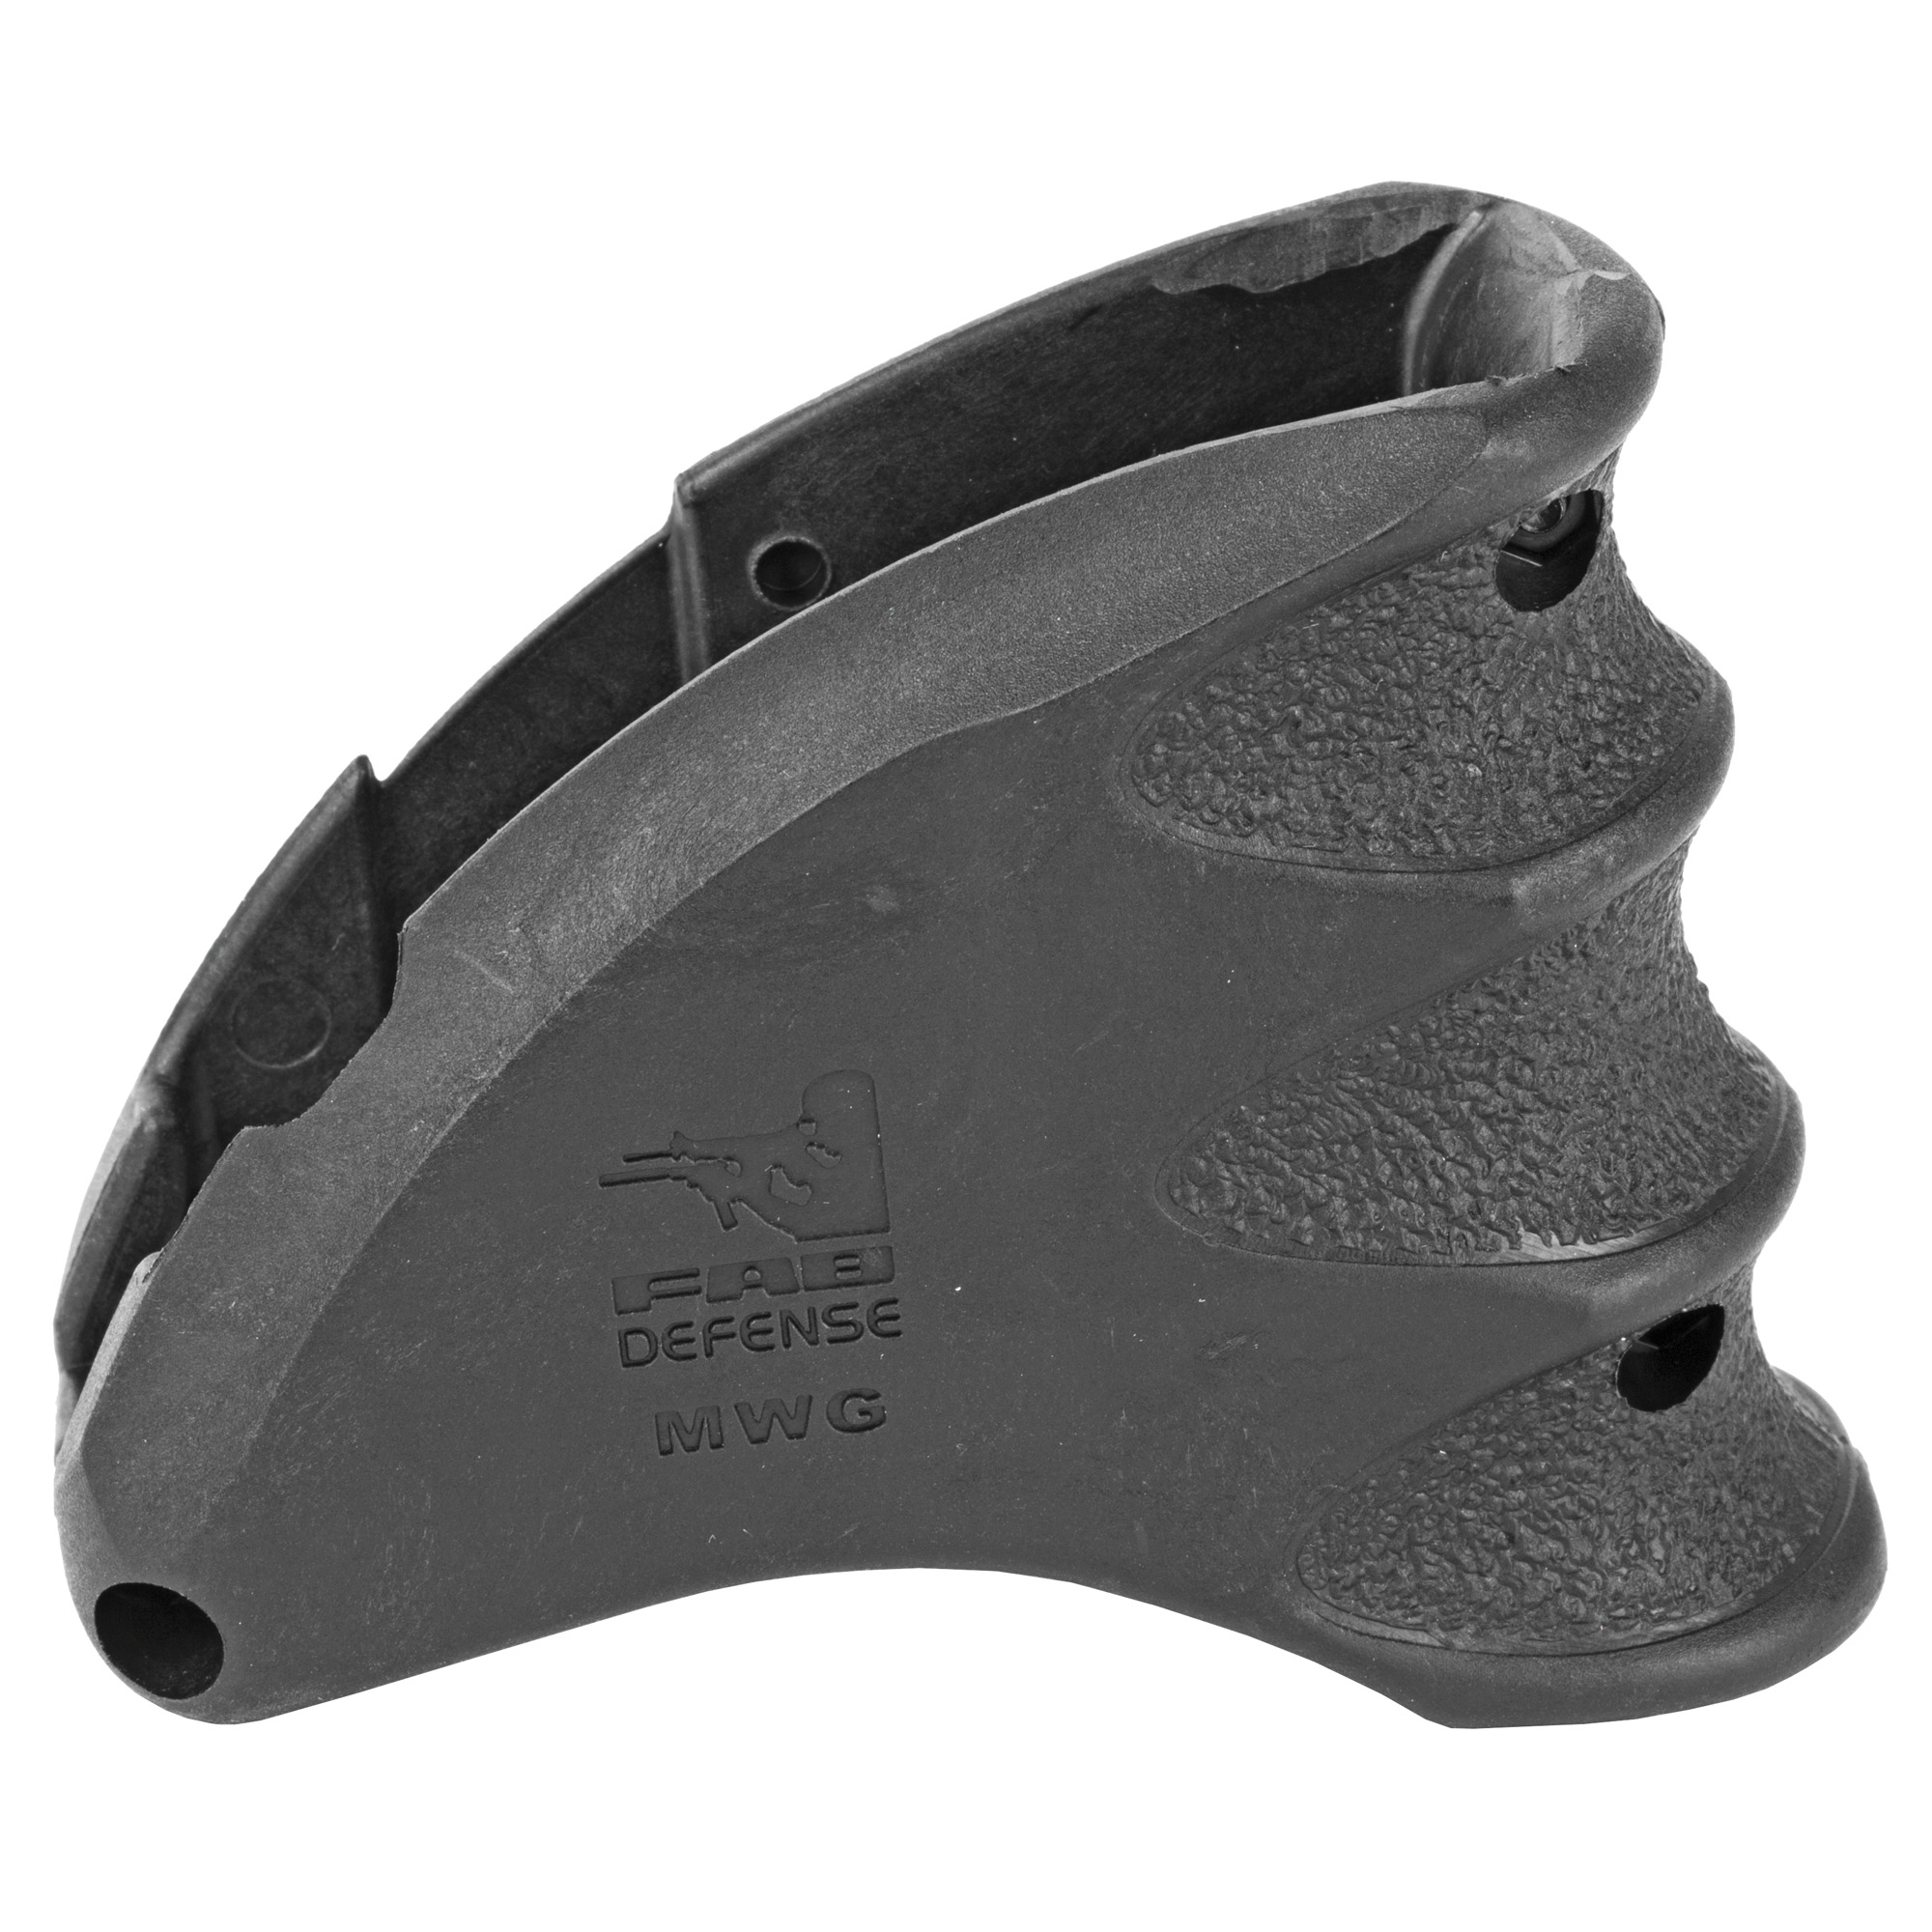 FAB Defense FXMWG MWG Mag-Well & Funnel 5.56x45mm NATO M16 Polymer Black Finish